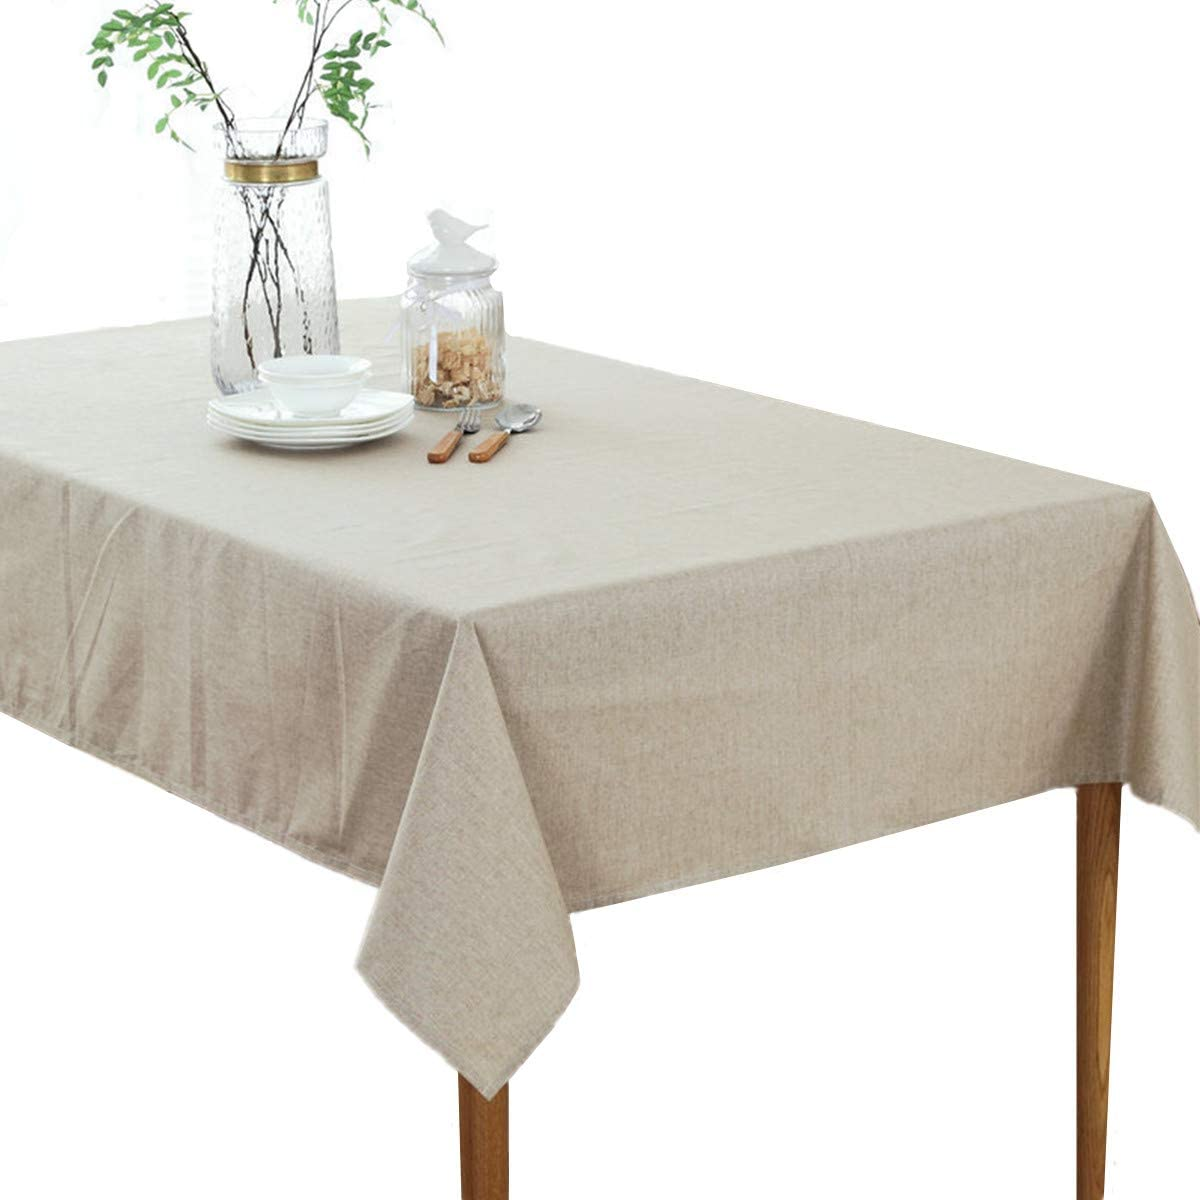 Solid Cotton Linen Tablecloth Simple Style Pure Color Square Table Cover for Dining Room Kitchen Decoration 52 x 52 inches Beige